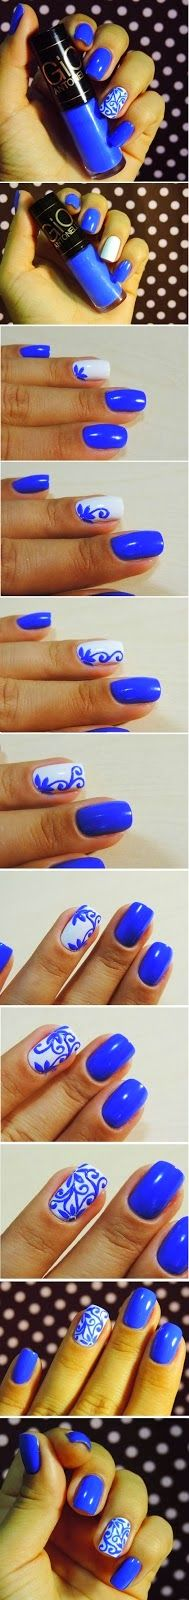 Nails Decorated with Enamel Cold on Stomach Tutorials